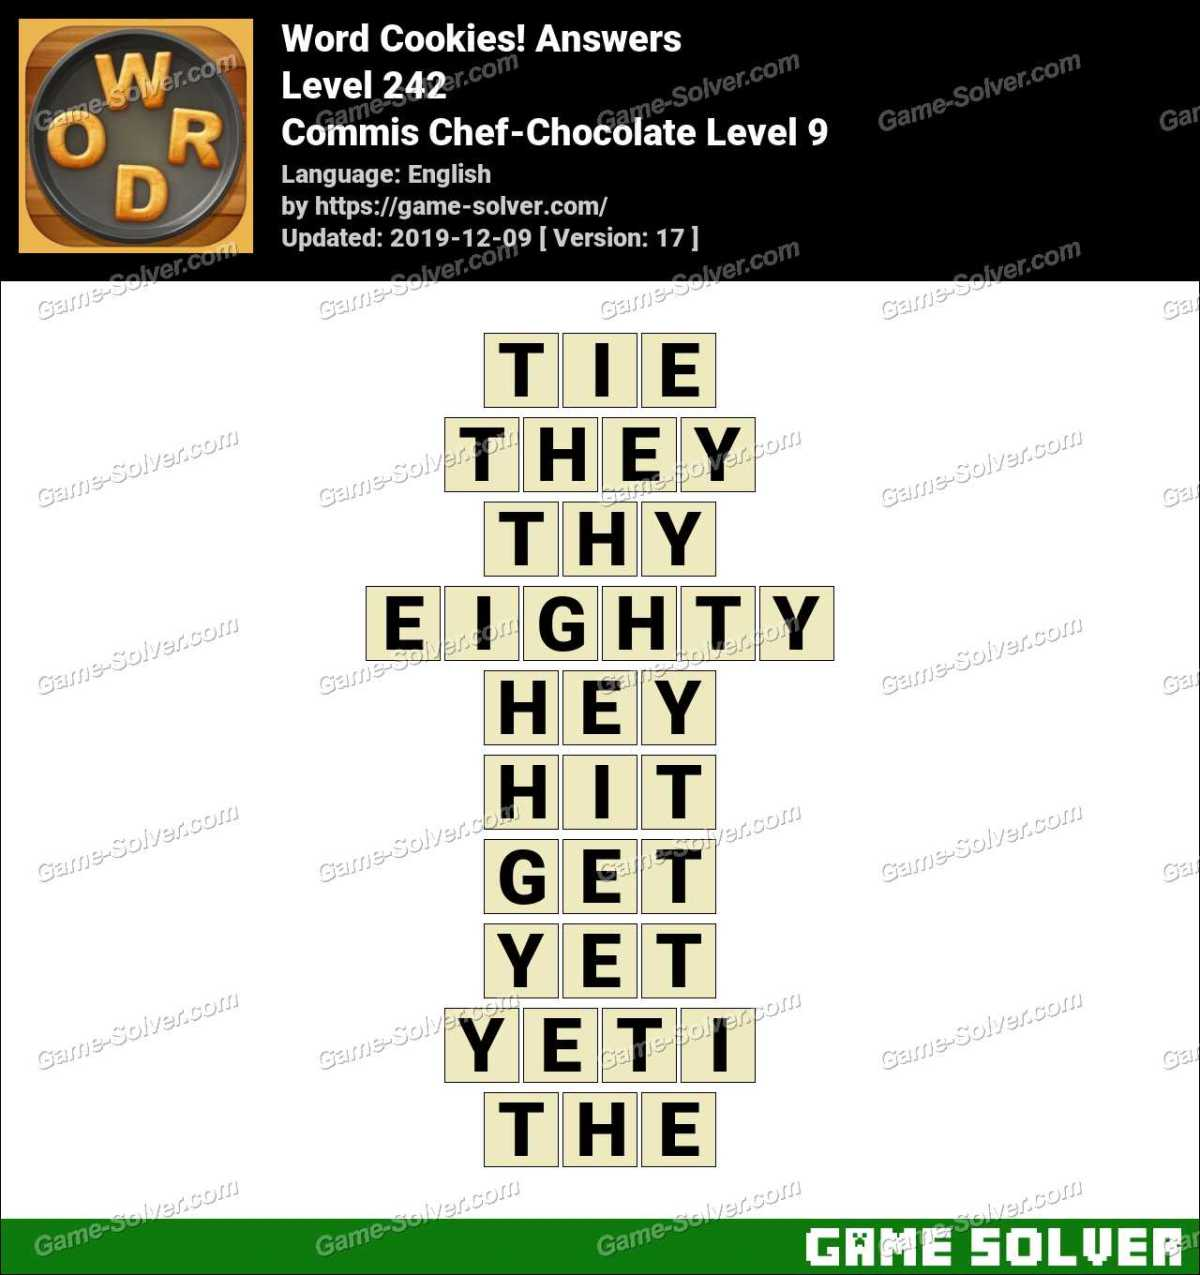 Word Cookies Commis Chef-Chocolate Level 9 Answers